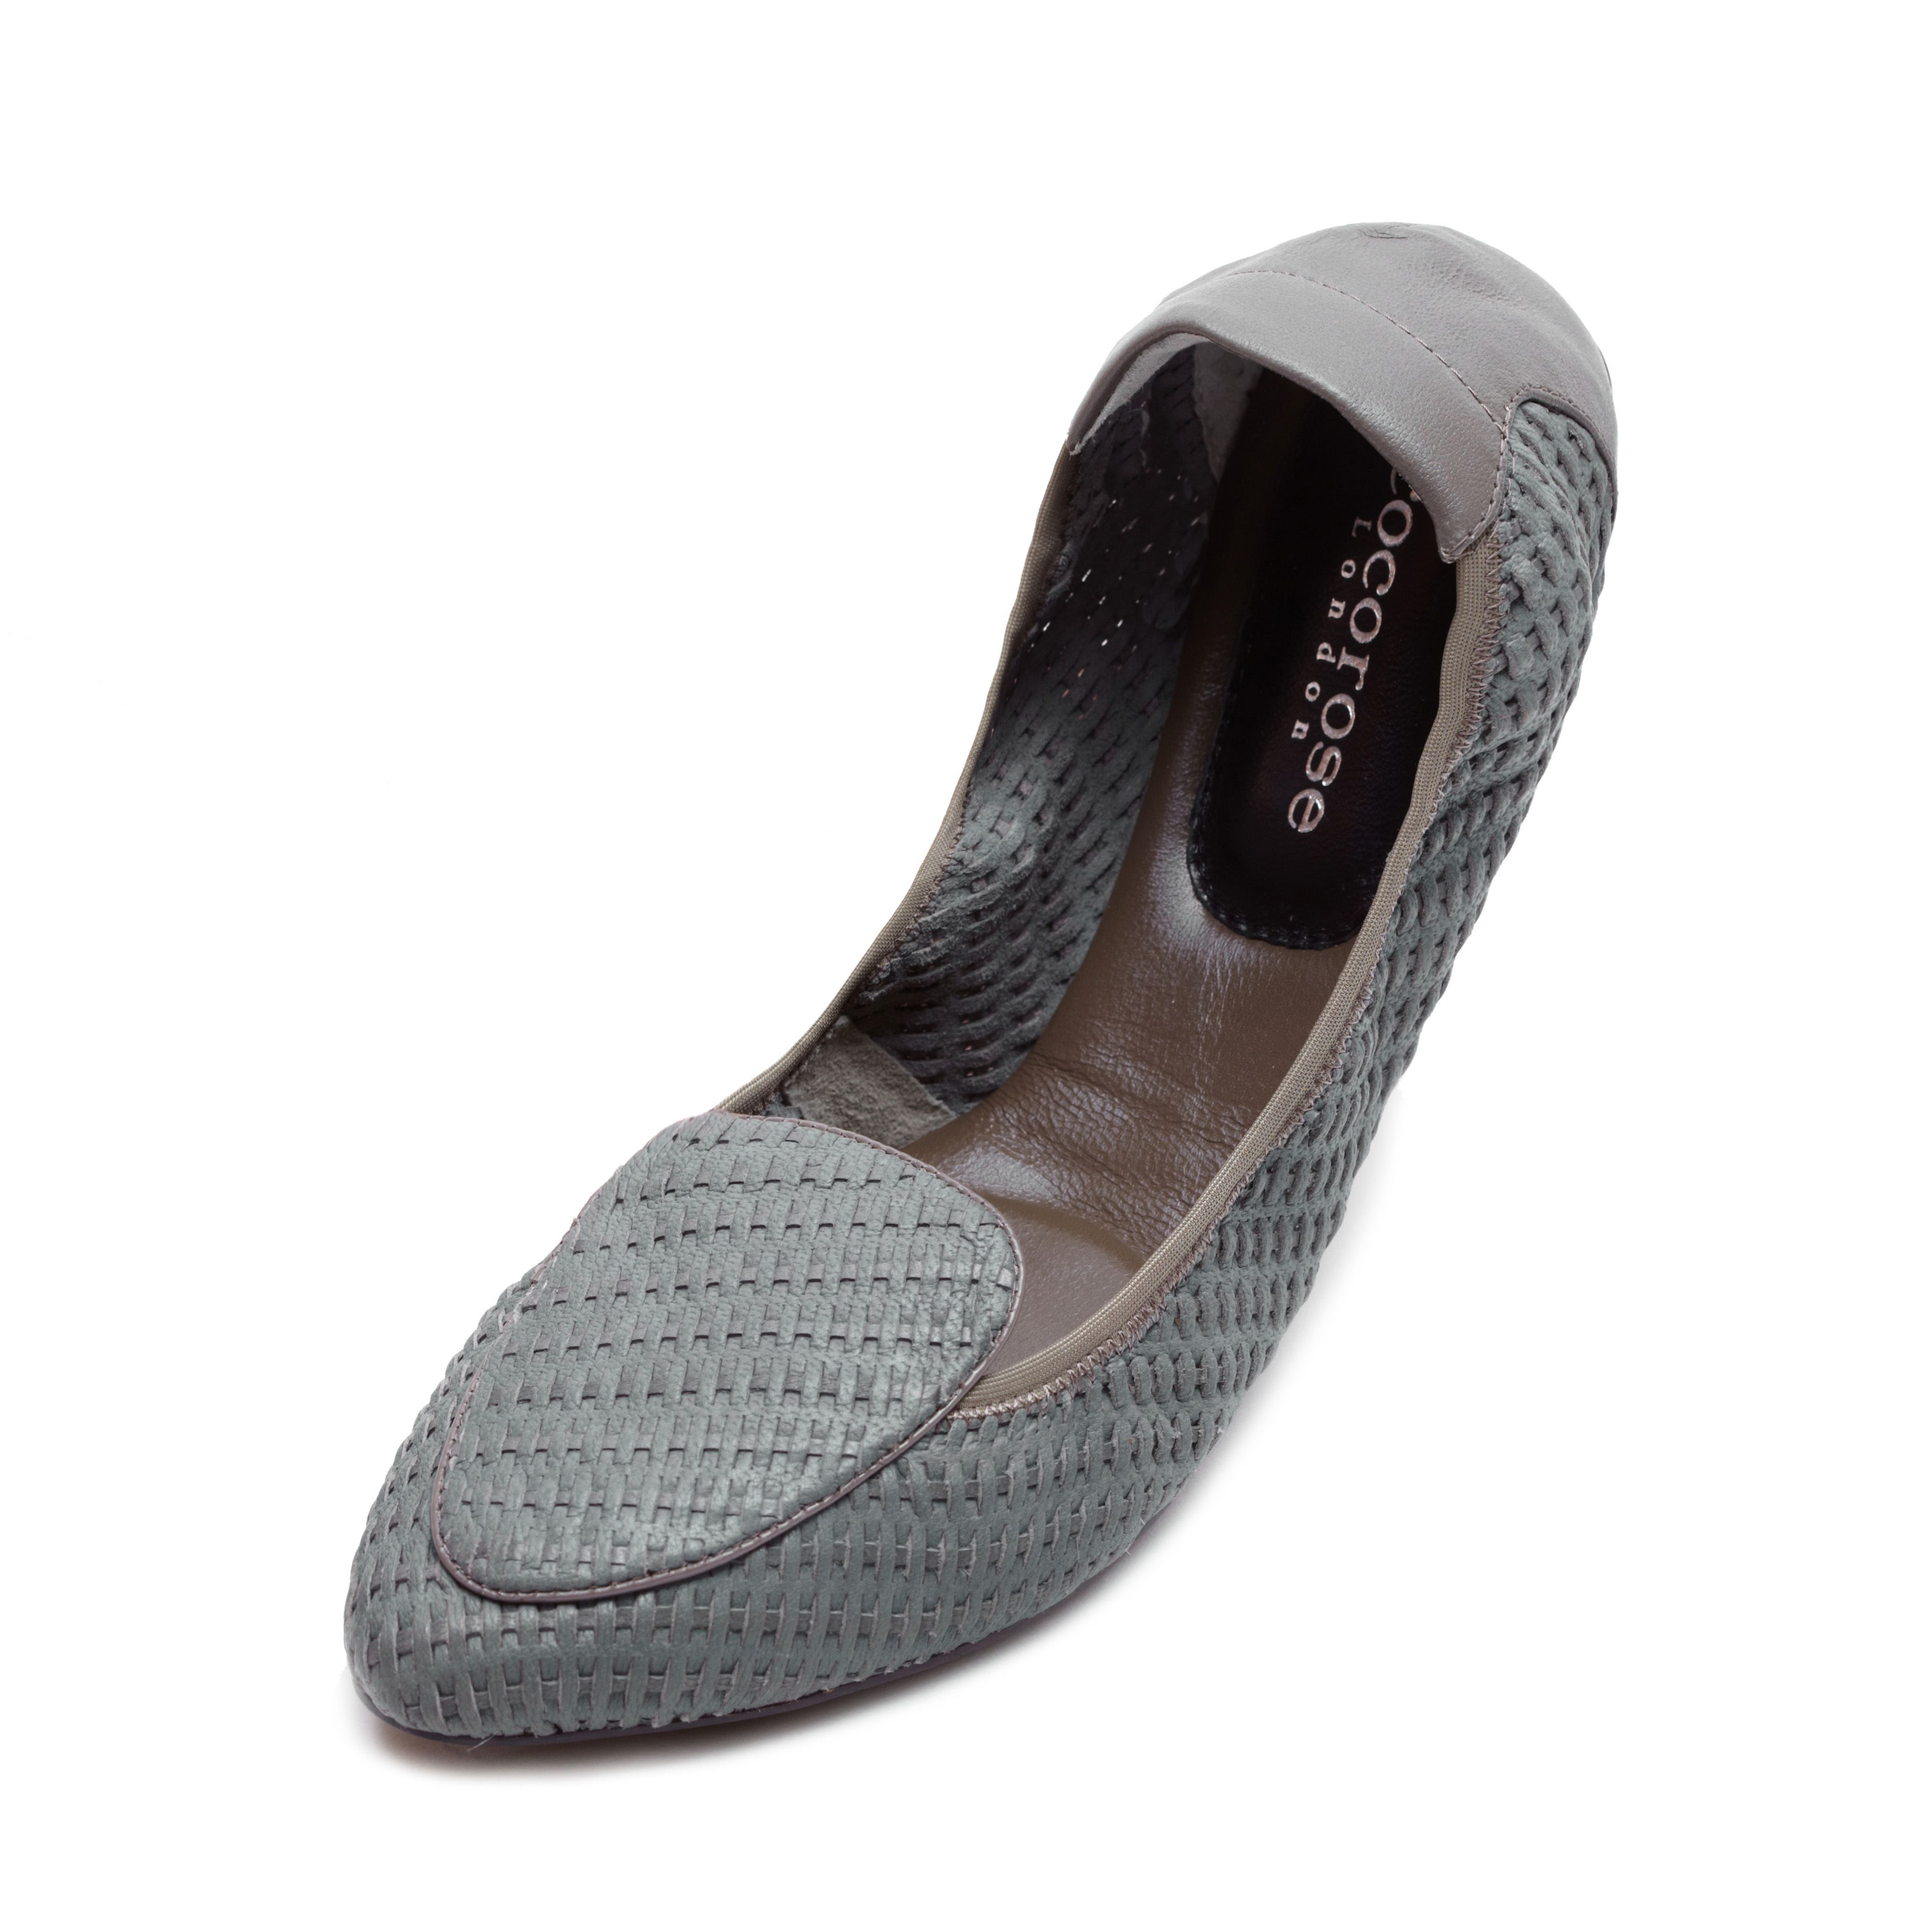 Clapham grey woven leather foldable loafer